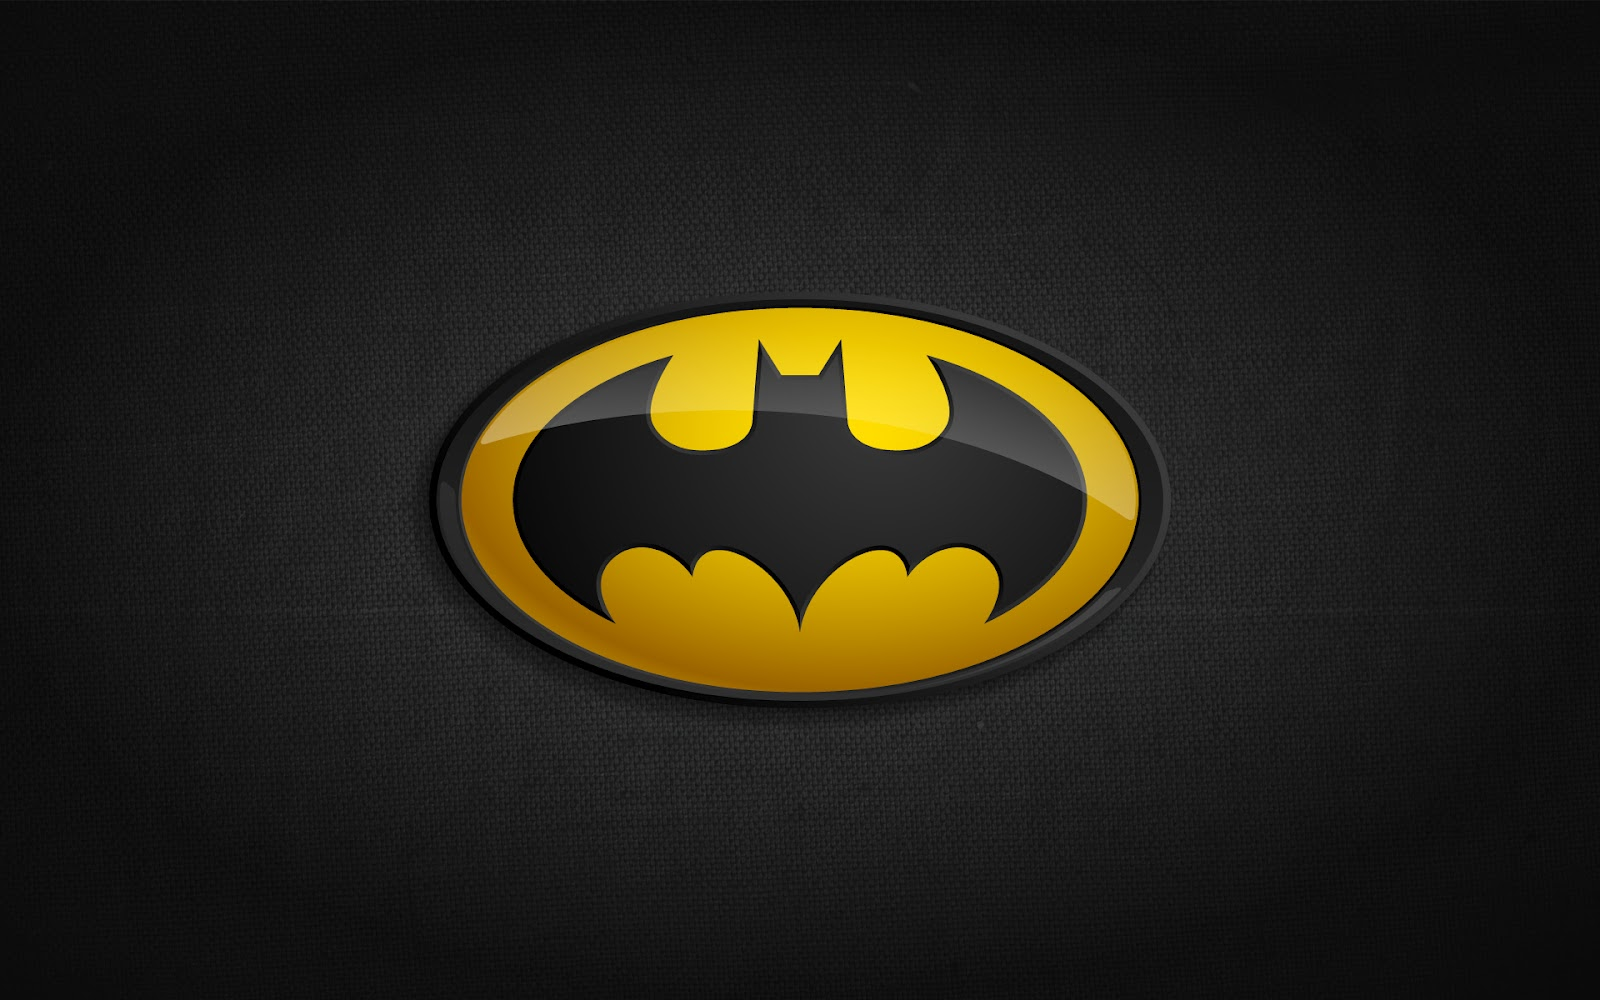 wallpaper batman mobile - photo #41